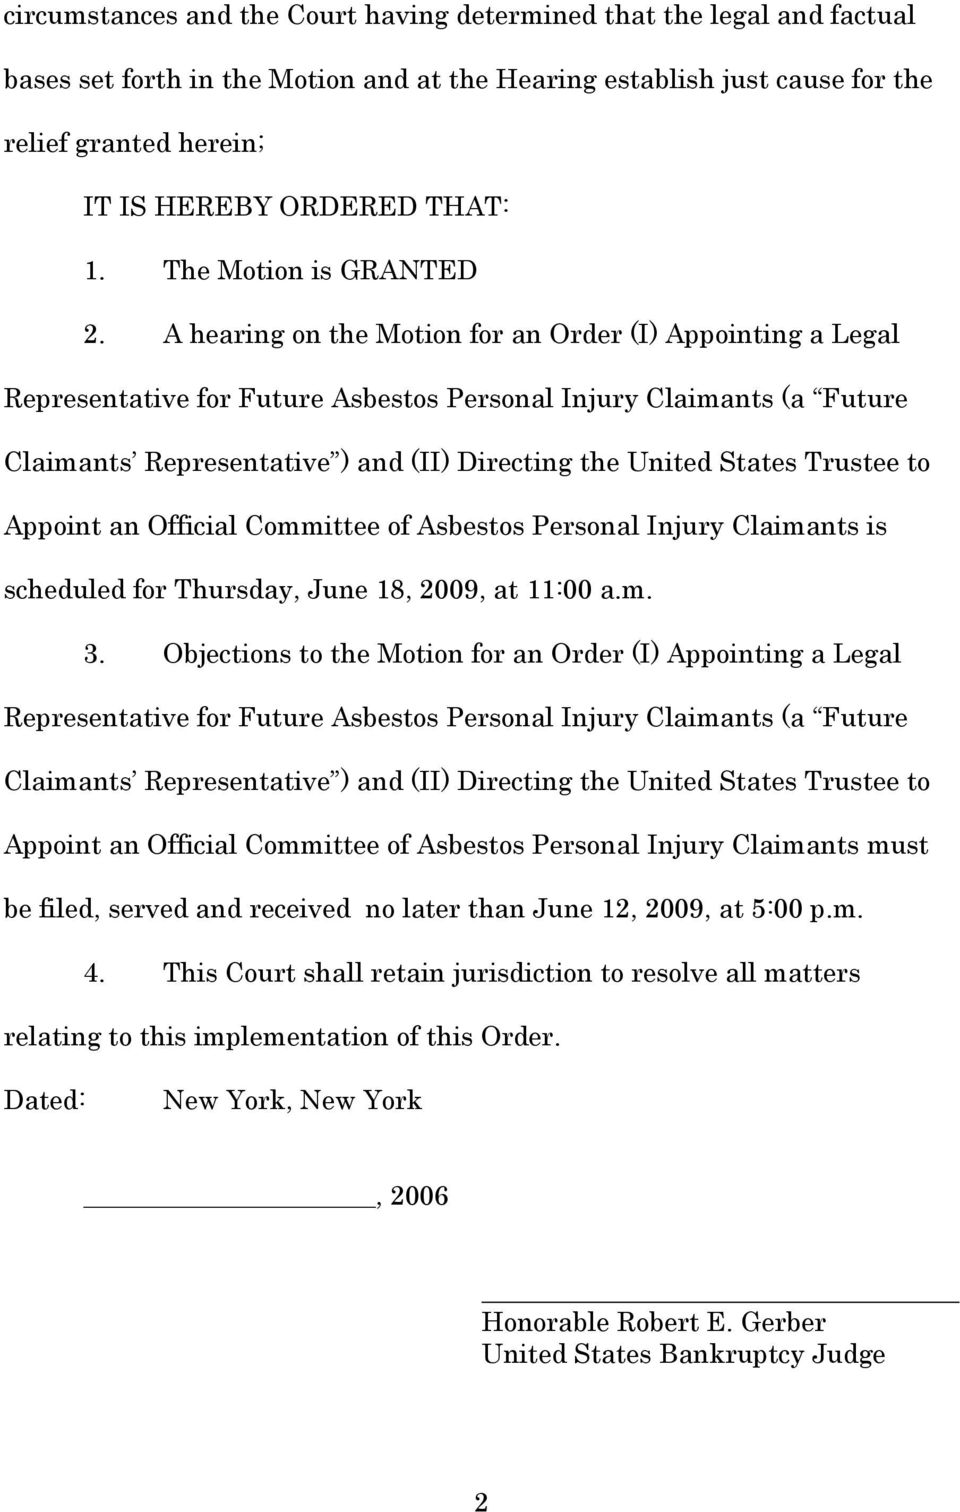 A hearing on the Motion for an Order (I Appointing a Legal Representative for Future Asbestos Personal Injury Claimants (a Future Claimants Representative and (II Directing the United States Trustee